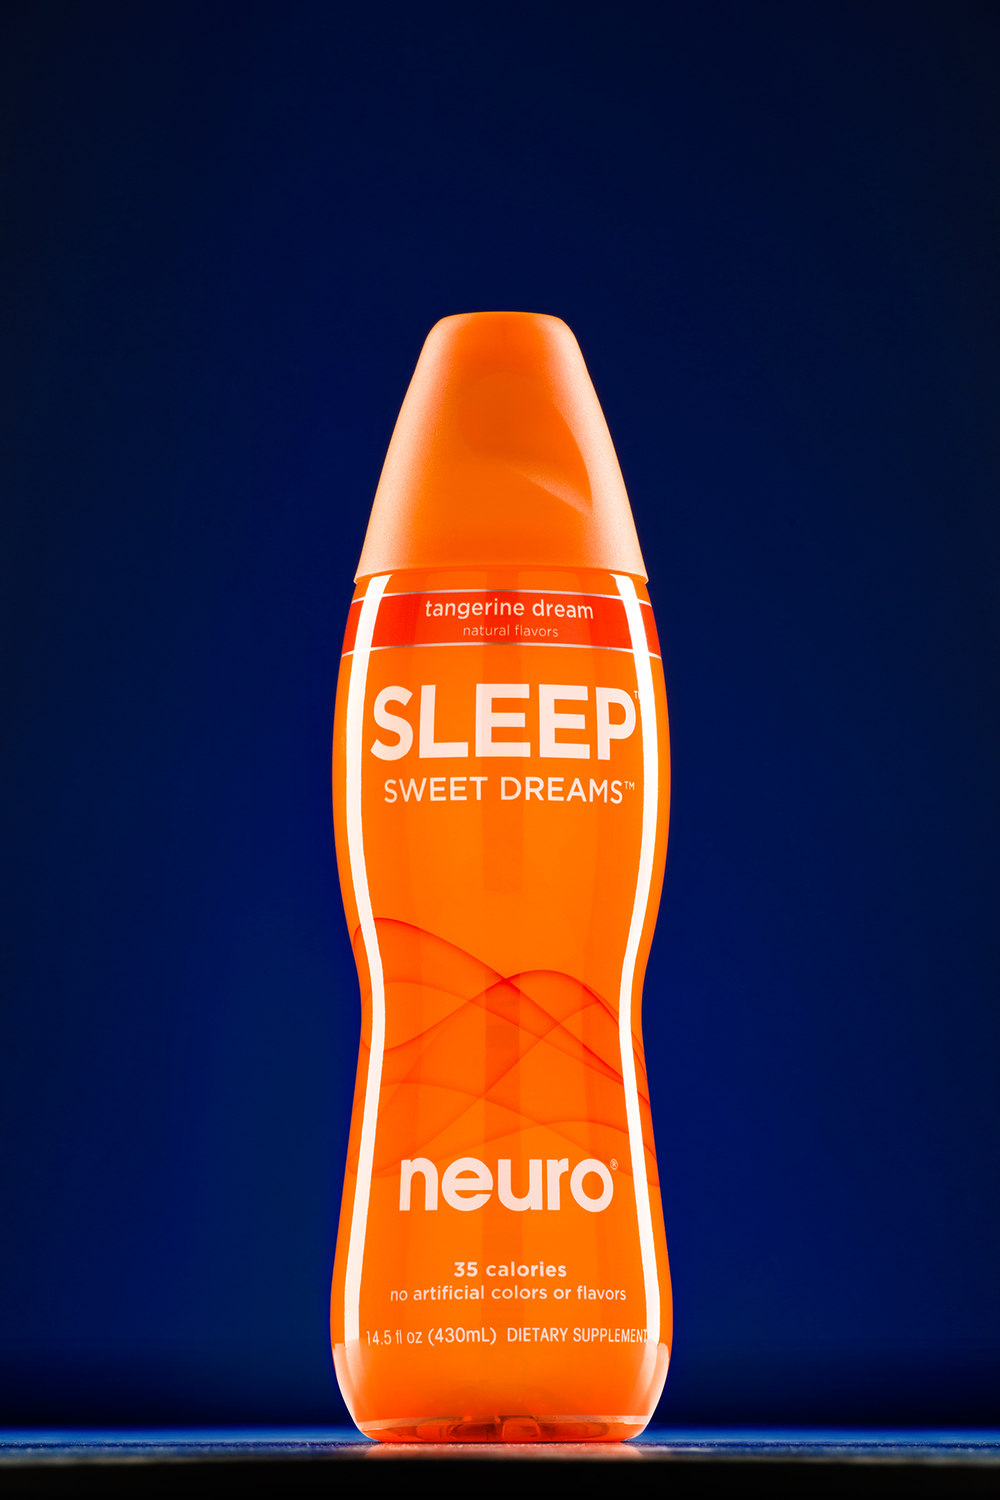 neuro-sleep.jpg